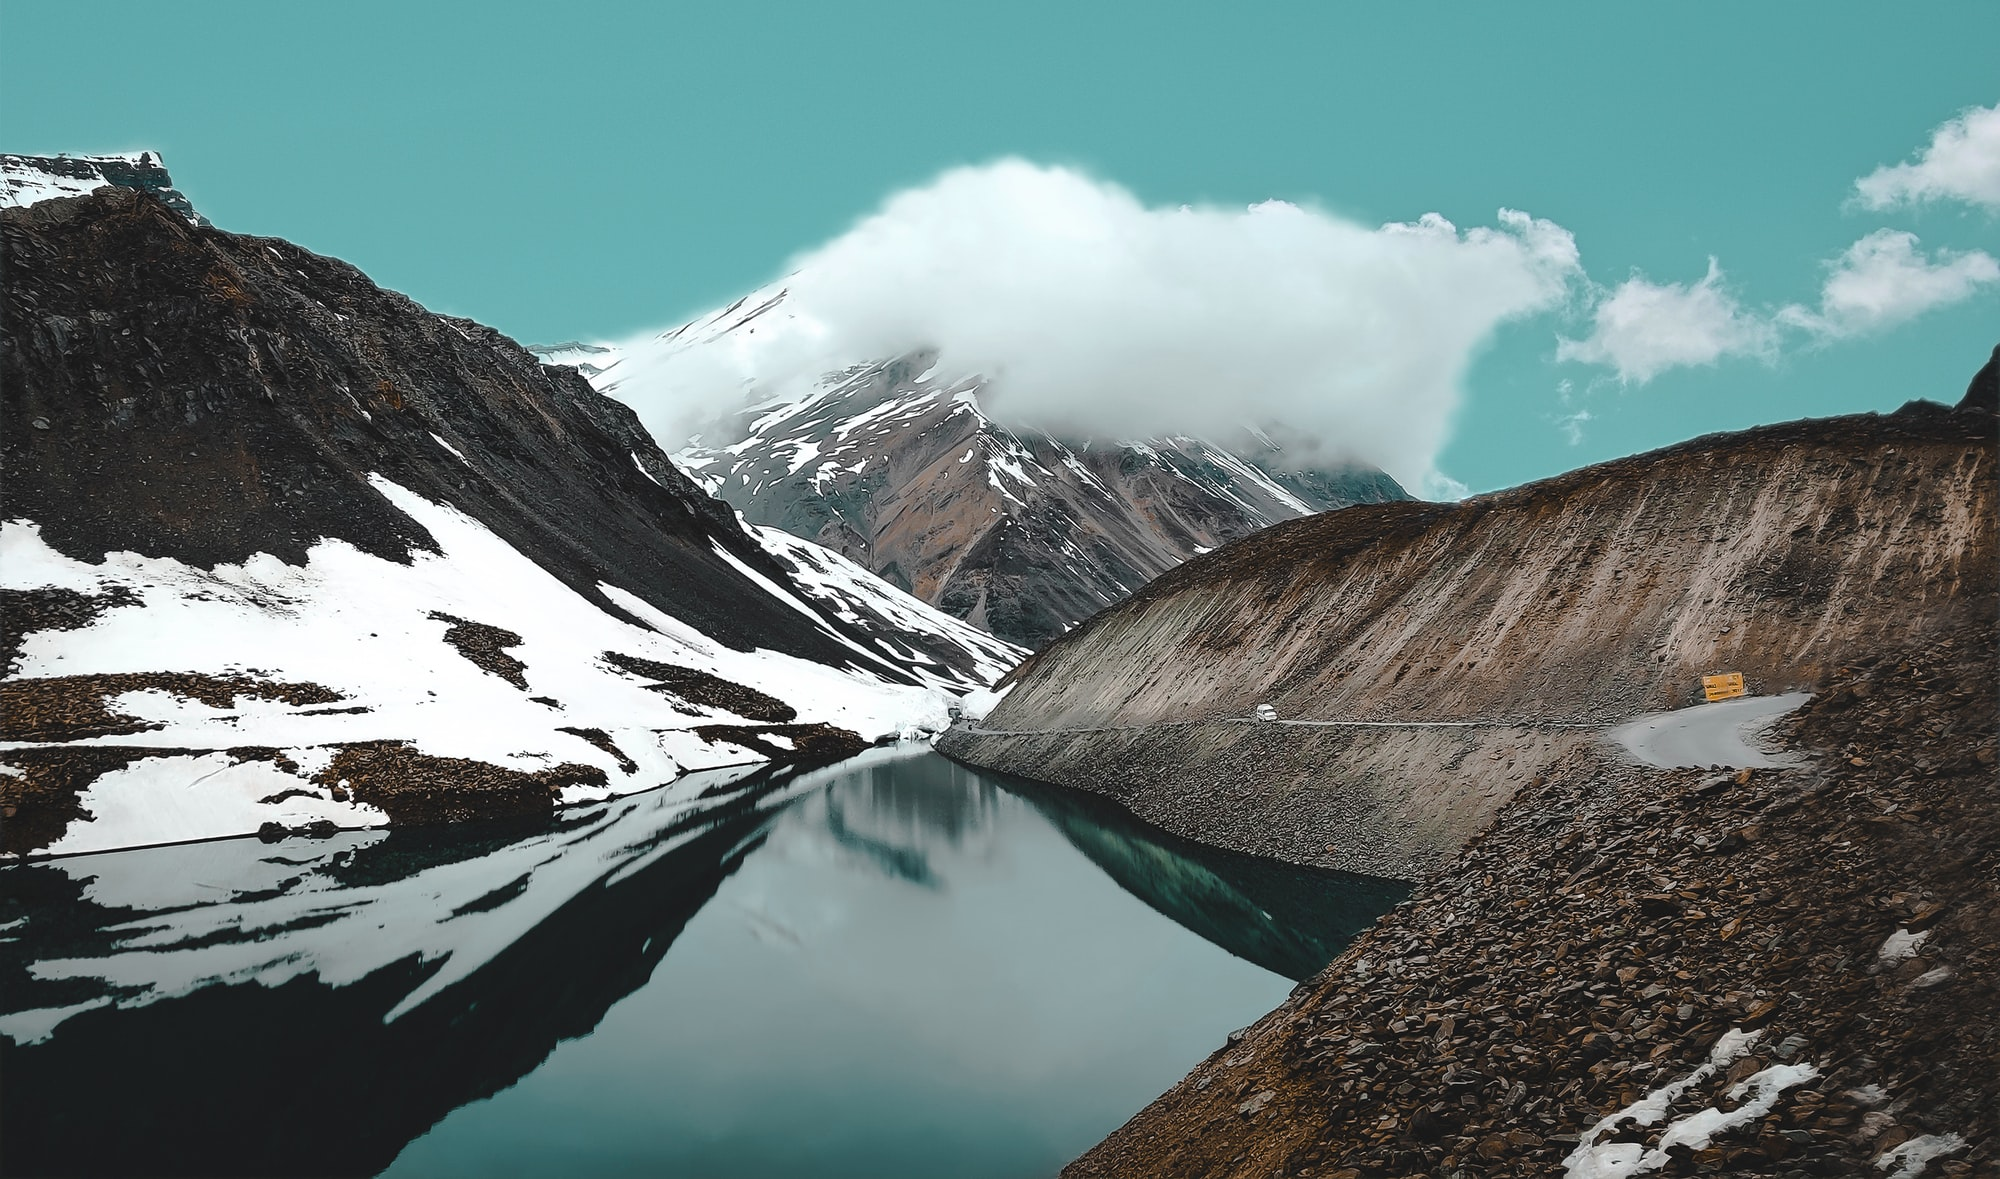 - Suraj Tal – Lake of the Sun God  - The Suraj Tal Lake in the Lahaul and Spiti district of Himachal Pradesh is one of the most enthralling and amazingly beautiful lakes in the country - Suraj Tal Lake is located close to Baralacha Pass